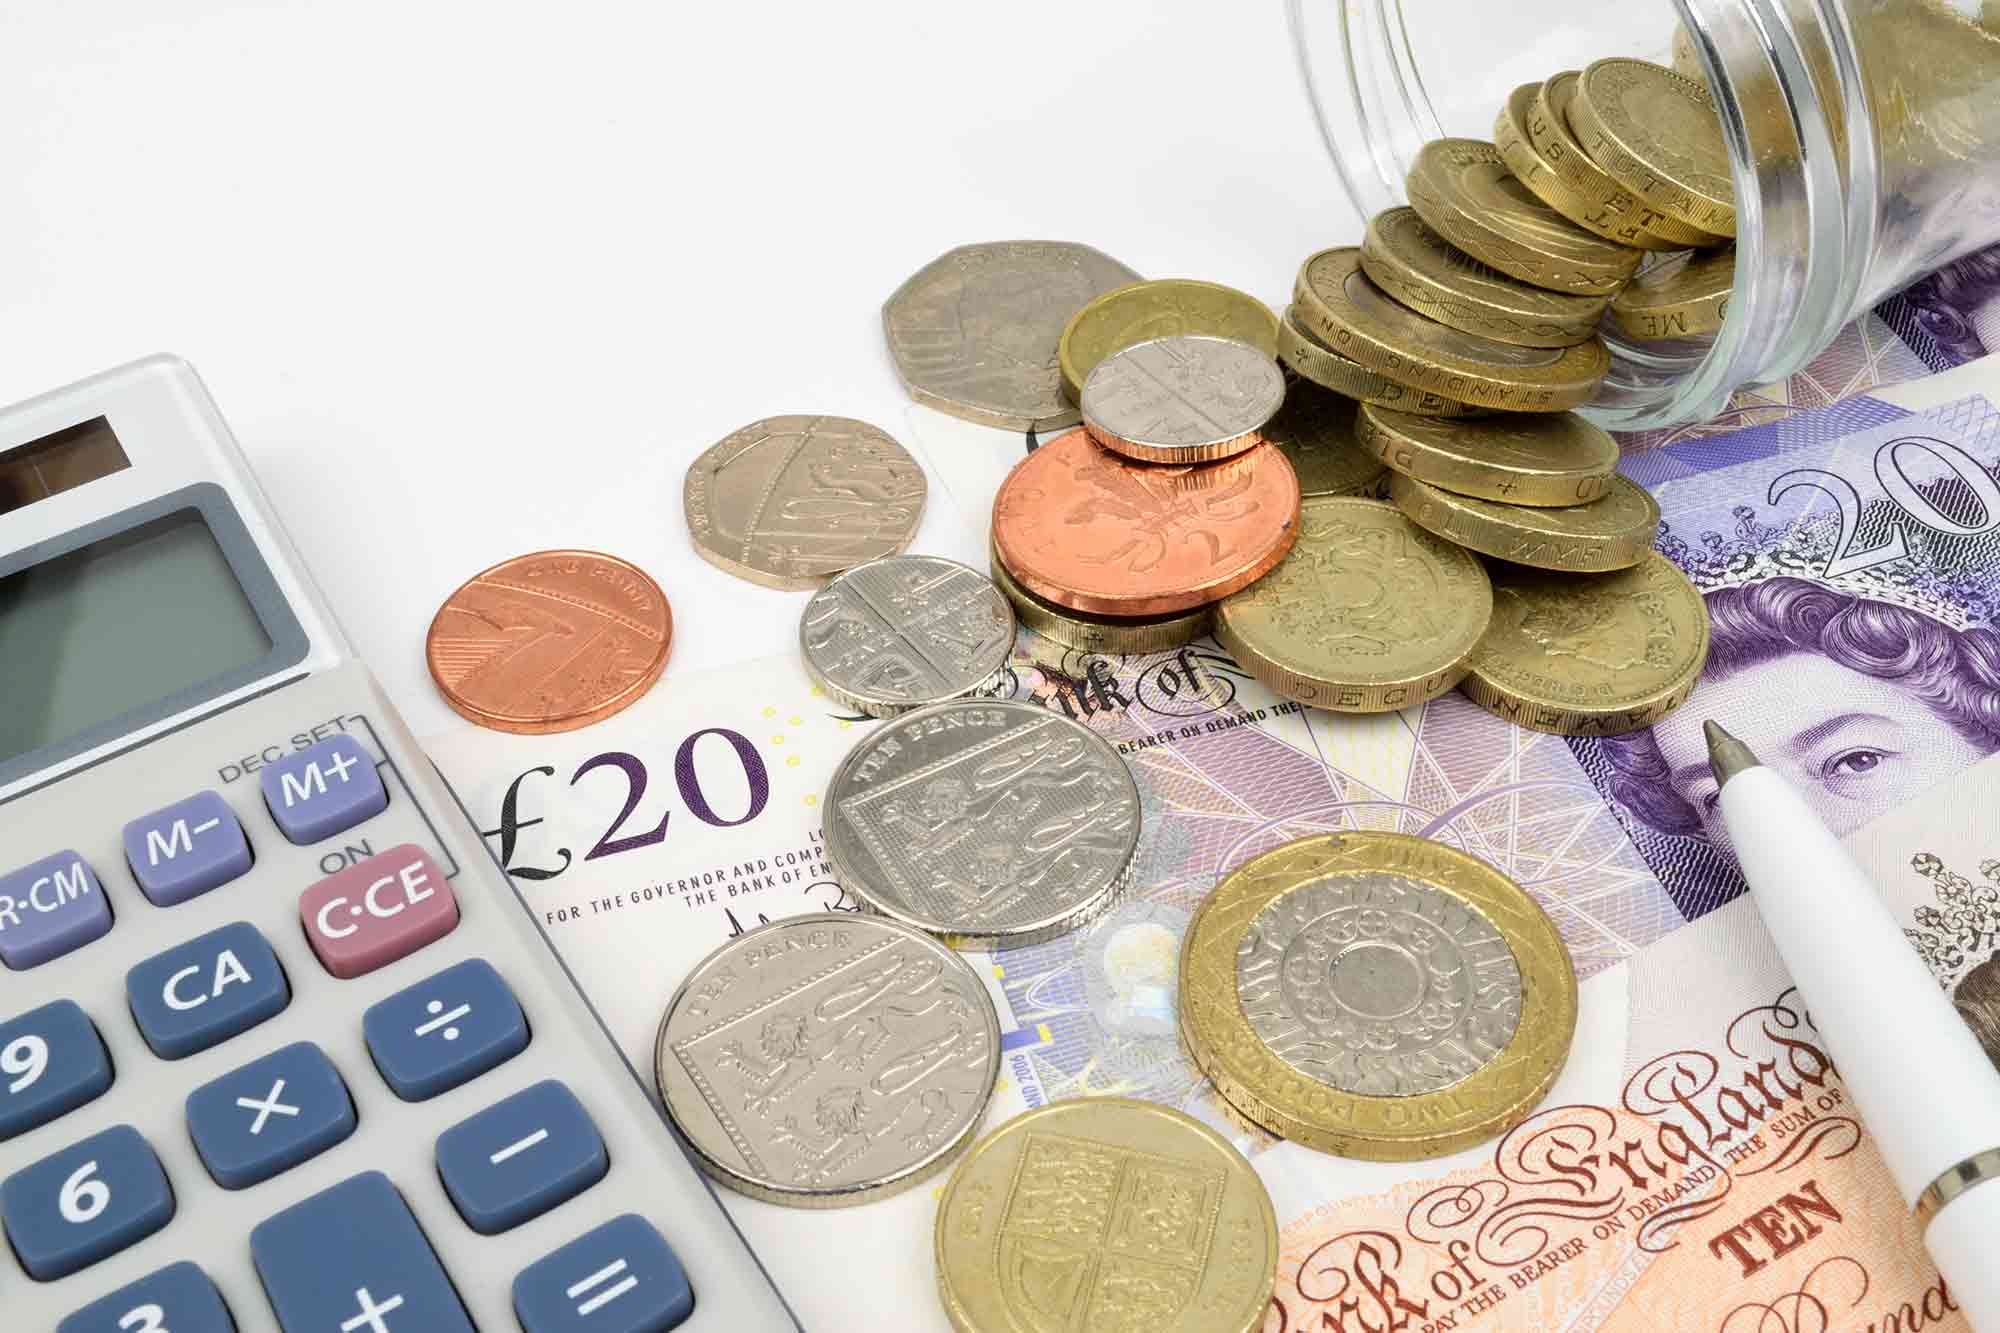 Dentists need to stay vigilant with their tax affairs in light of COVID-19 relief schemes